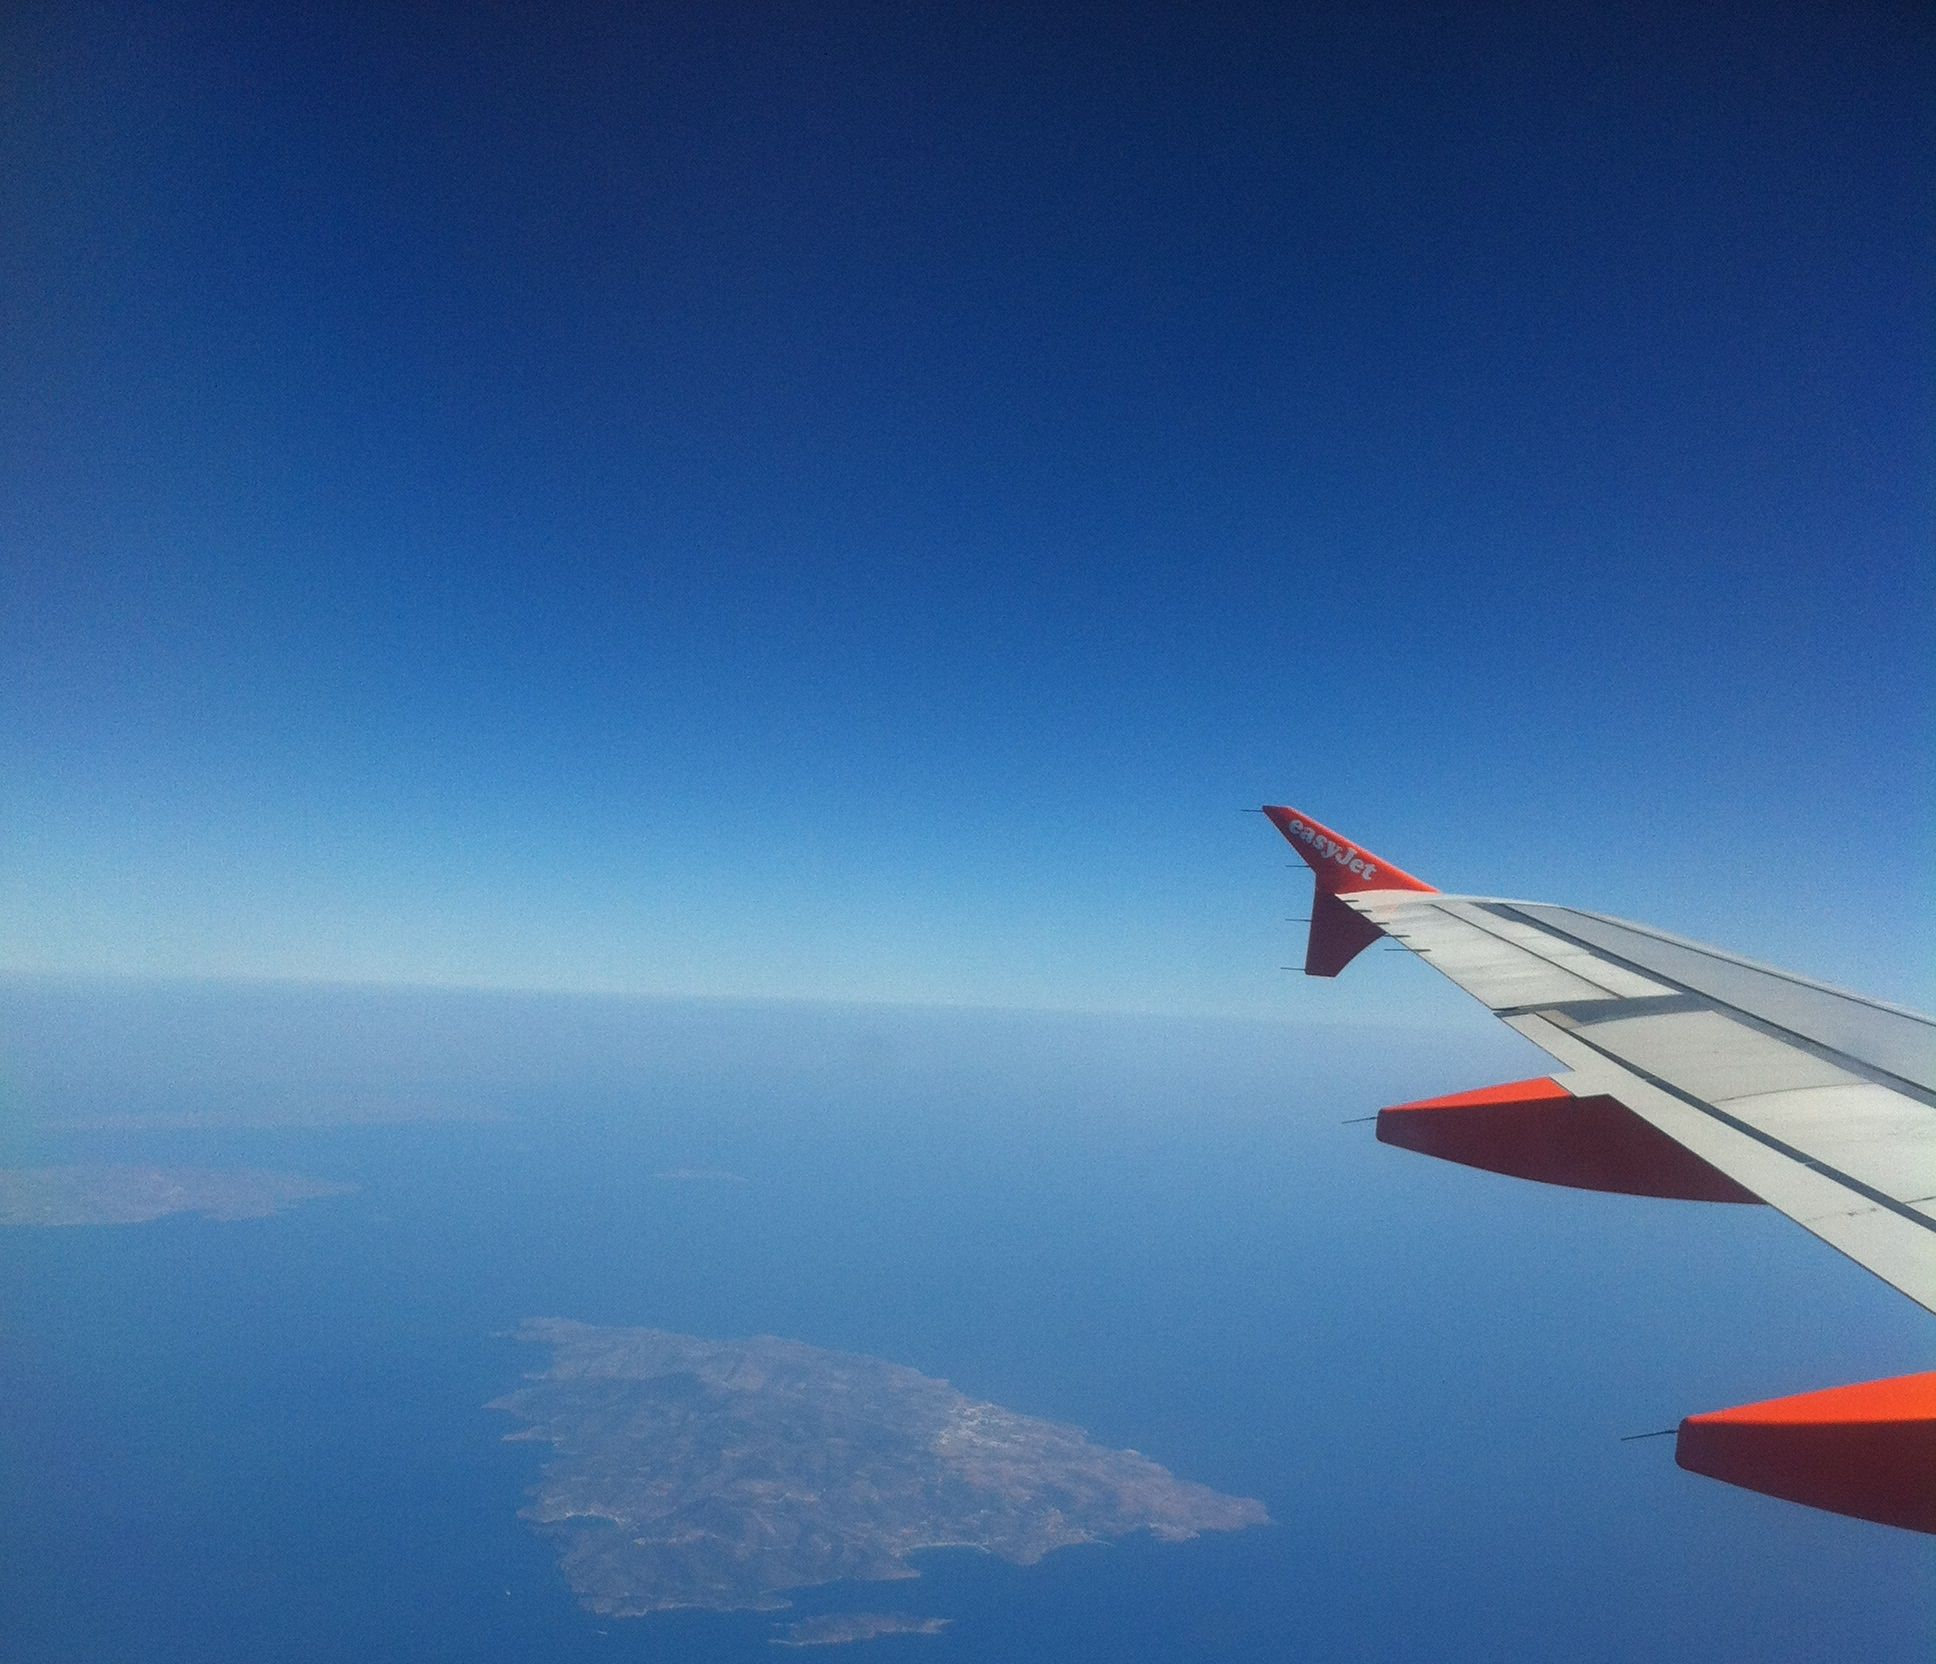 awesome view of Cyclades from plane